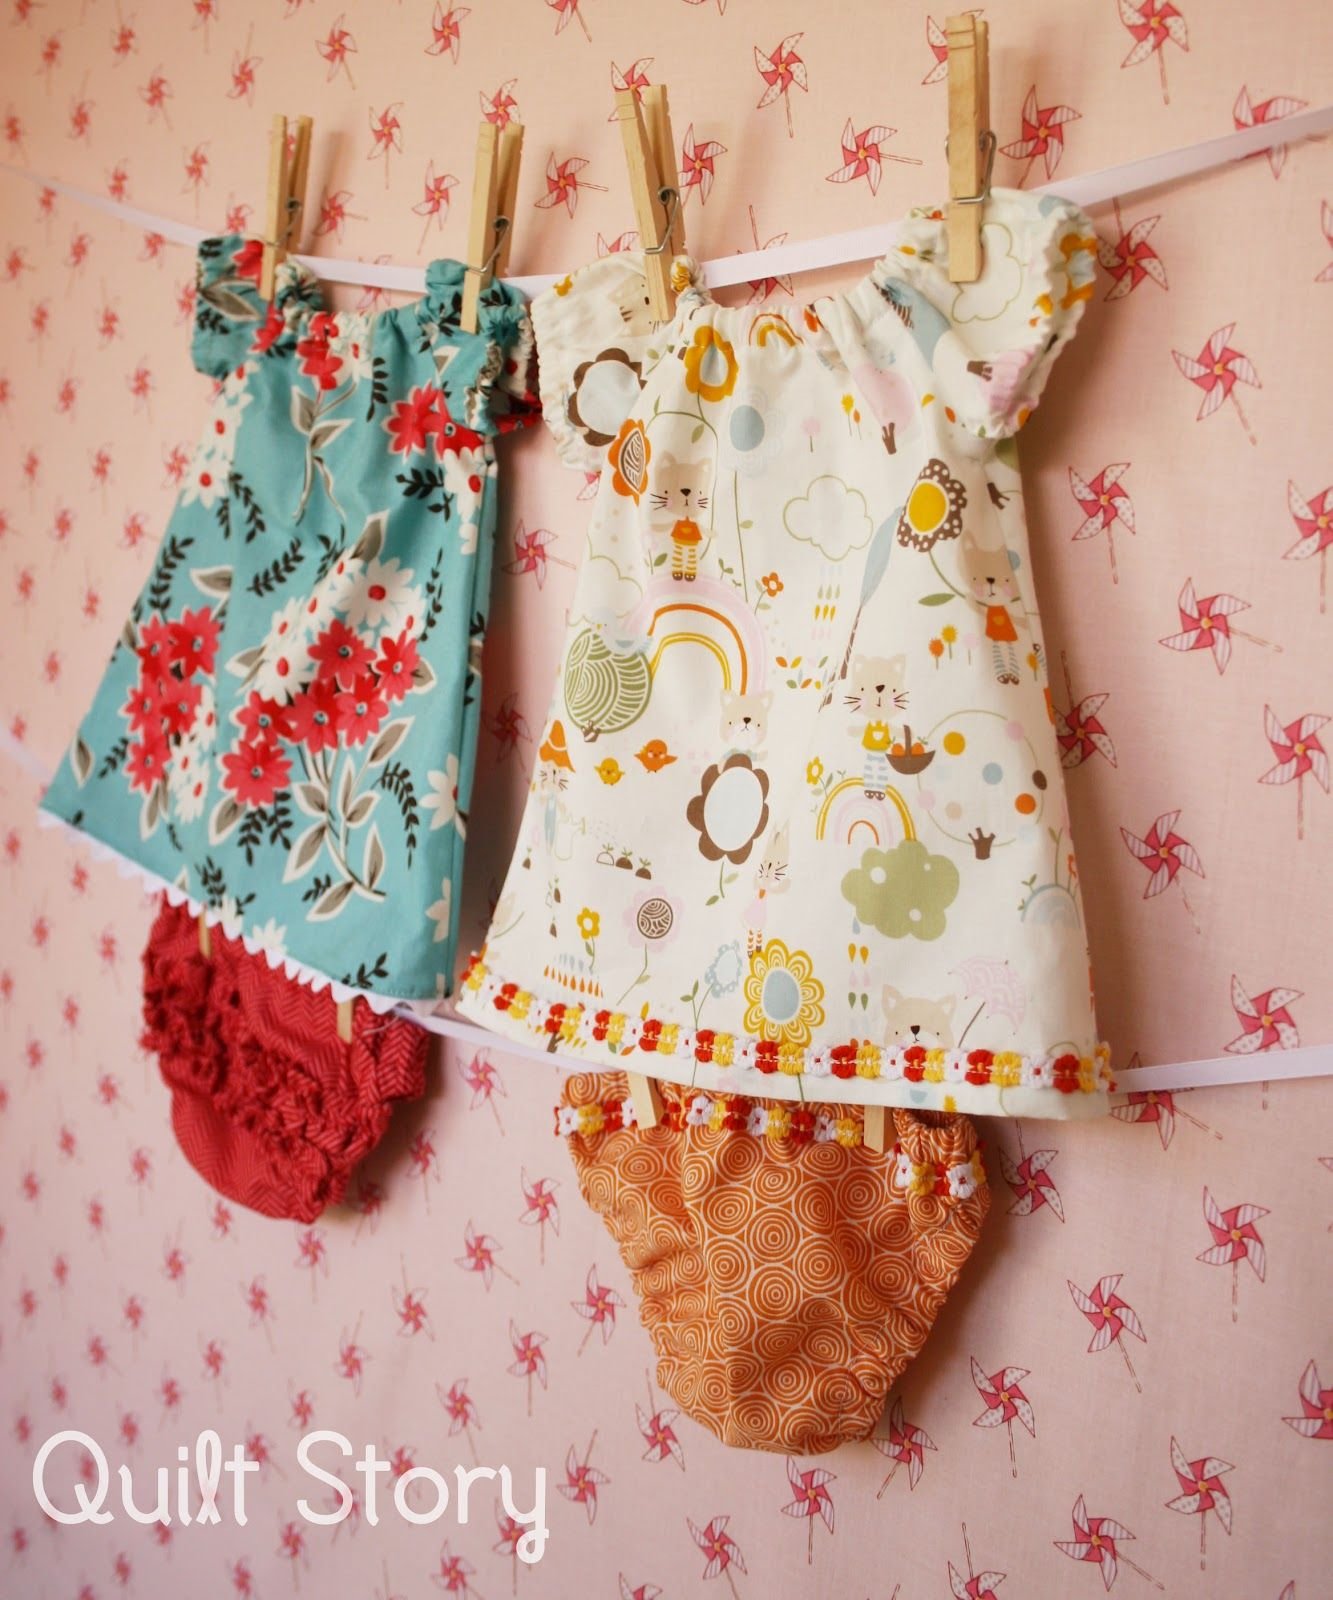 Quilt story cute baby peasant dresses from sew much ado free quilt story cute baby peasant dresses from sew much ado free pattern jeuxipadfo Choice Image